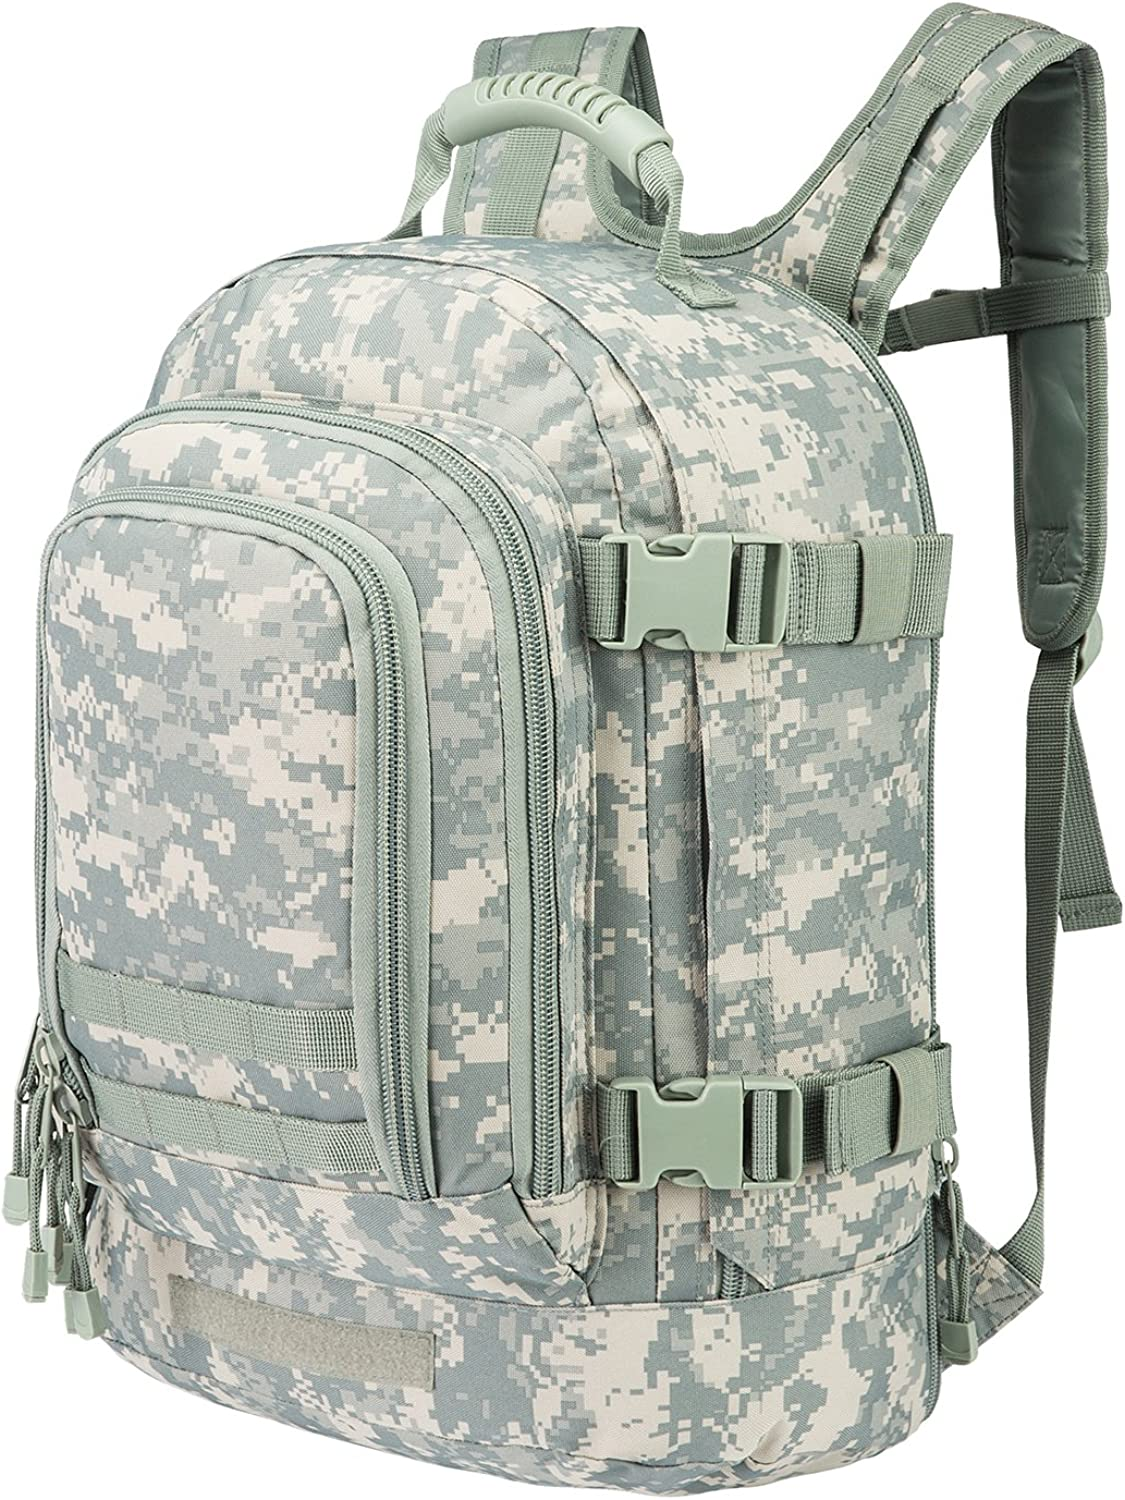 80L Military Backpack Daypack Bug Out Bag for Hiking Camping Outdoor Travel